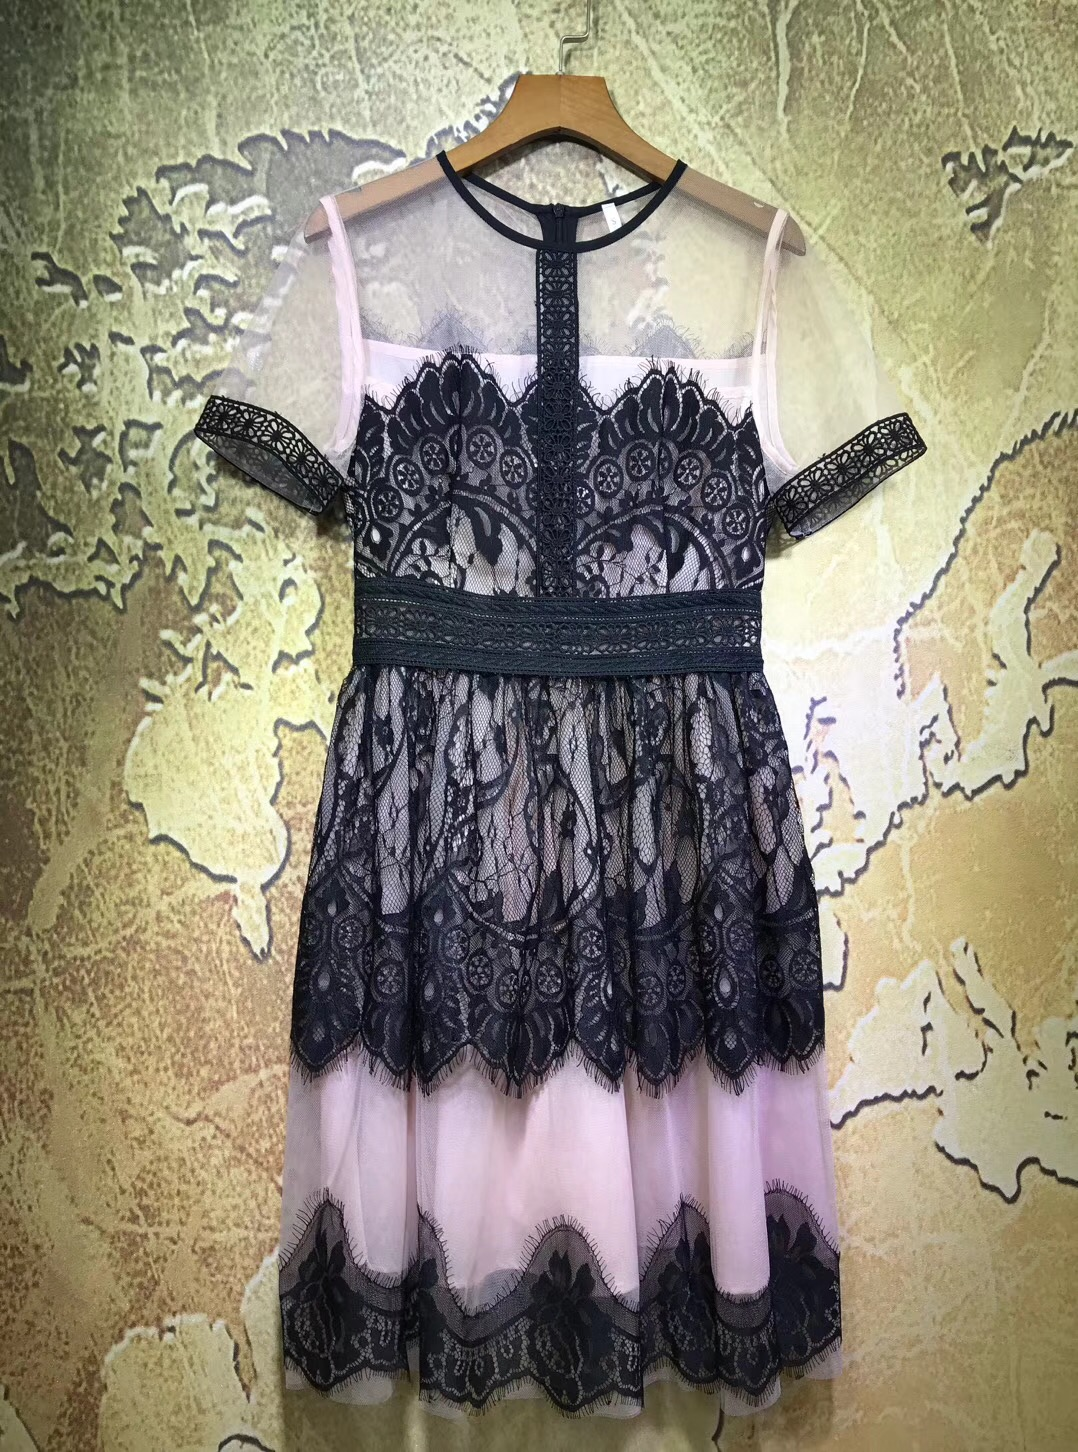 Free Shipping 2018 New Arrival Summer Dresses For Women O-Neck Short Sleeve Net Cloth Lace High Waist Women Dress